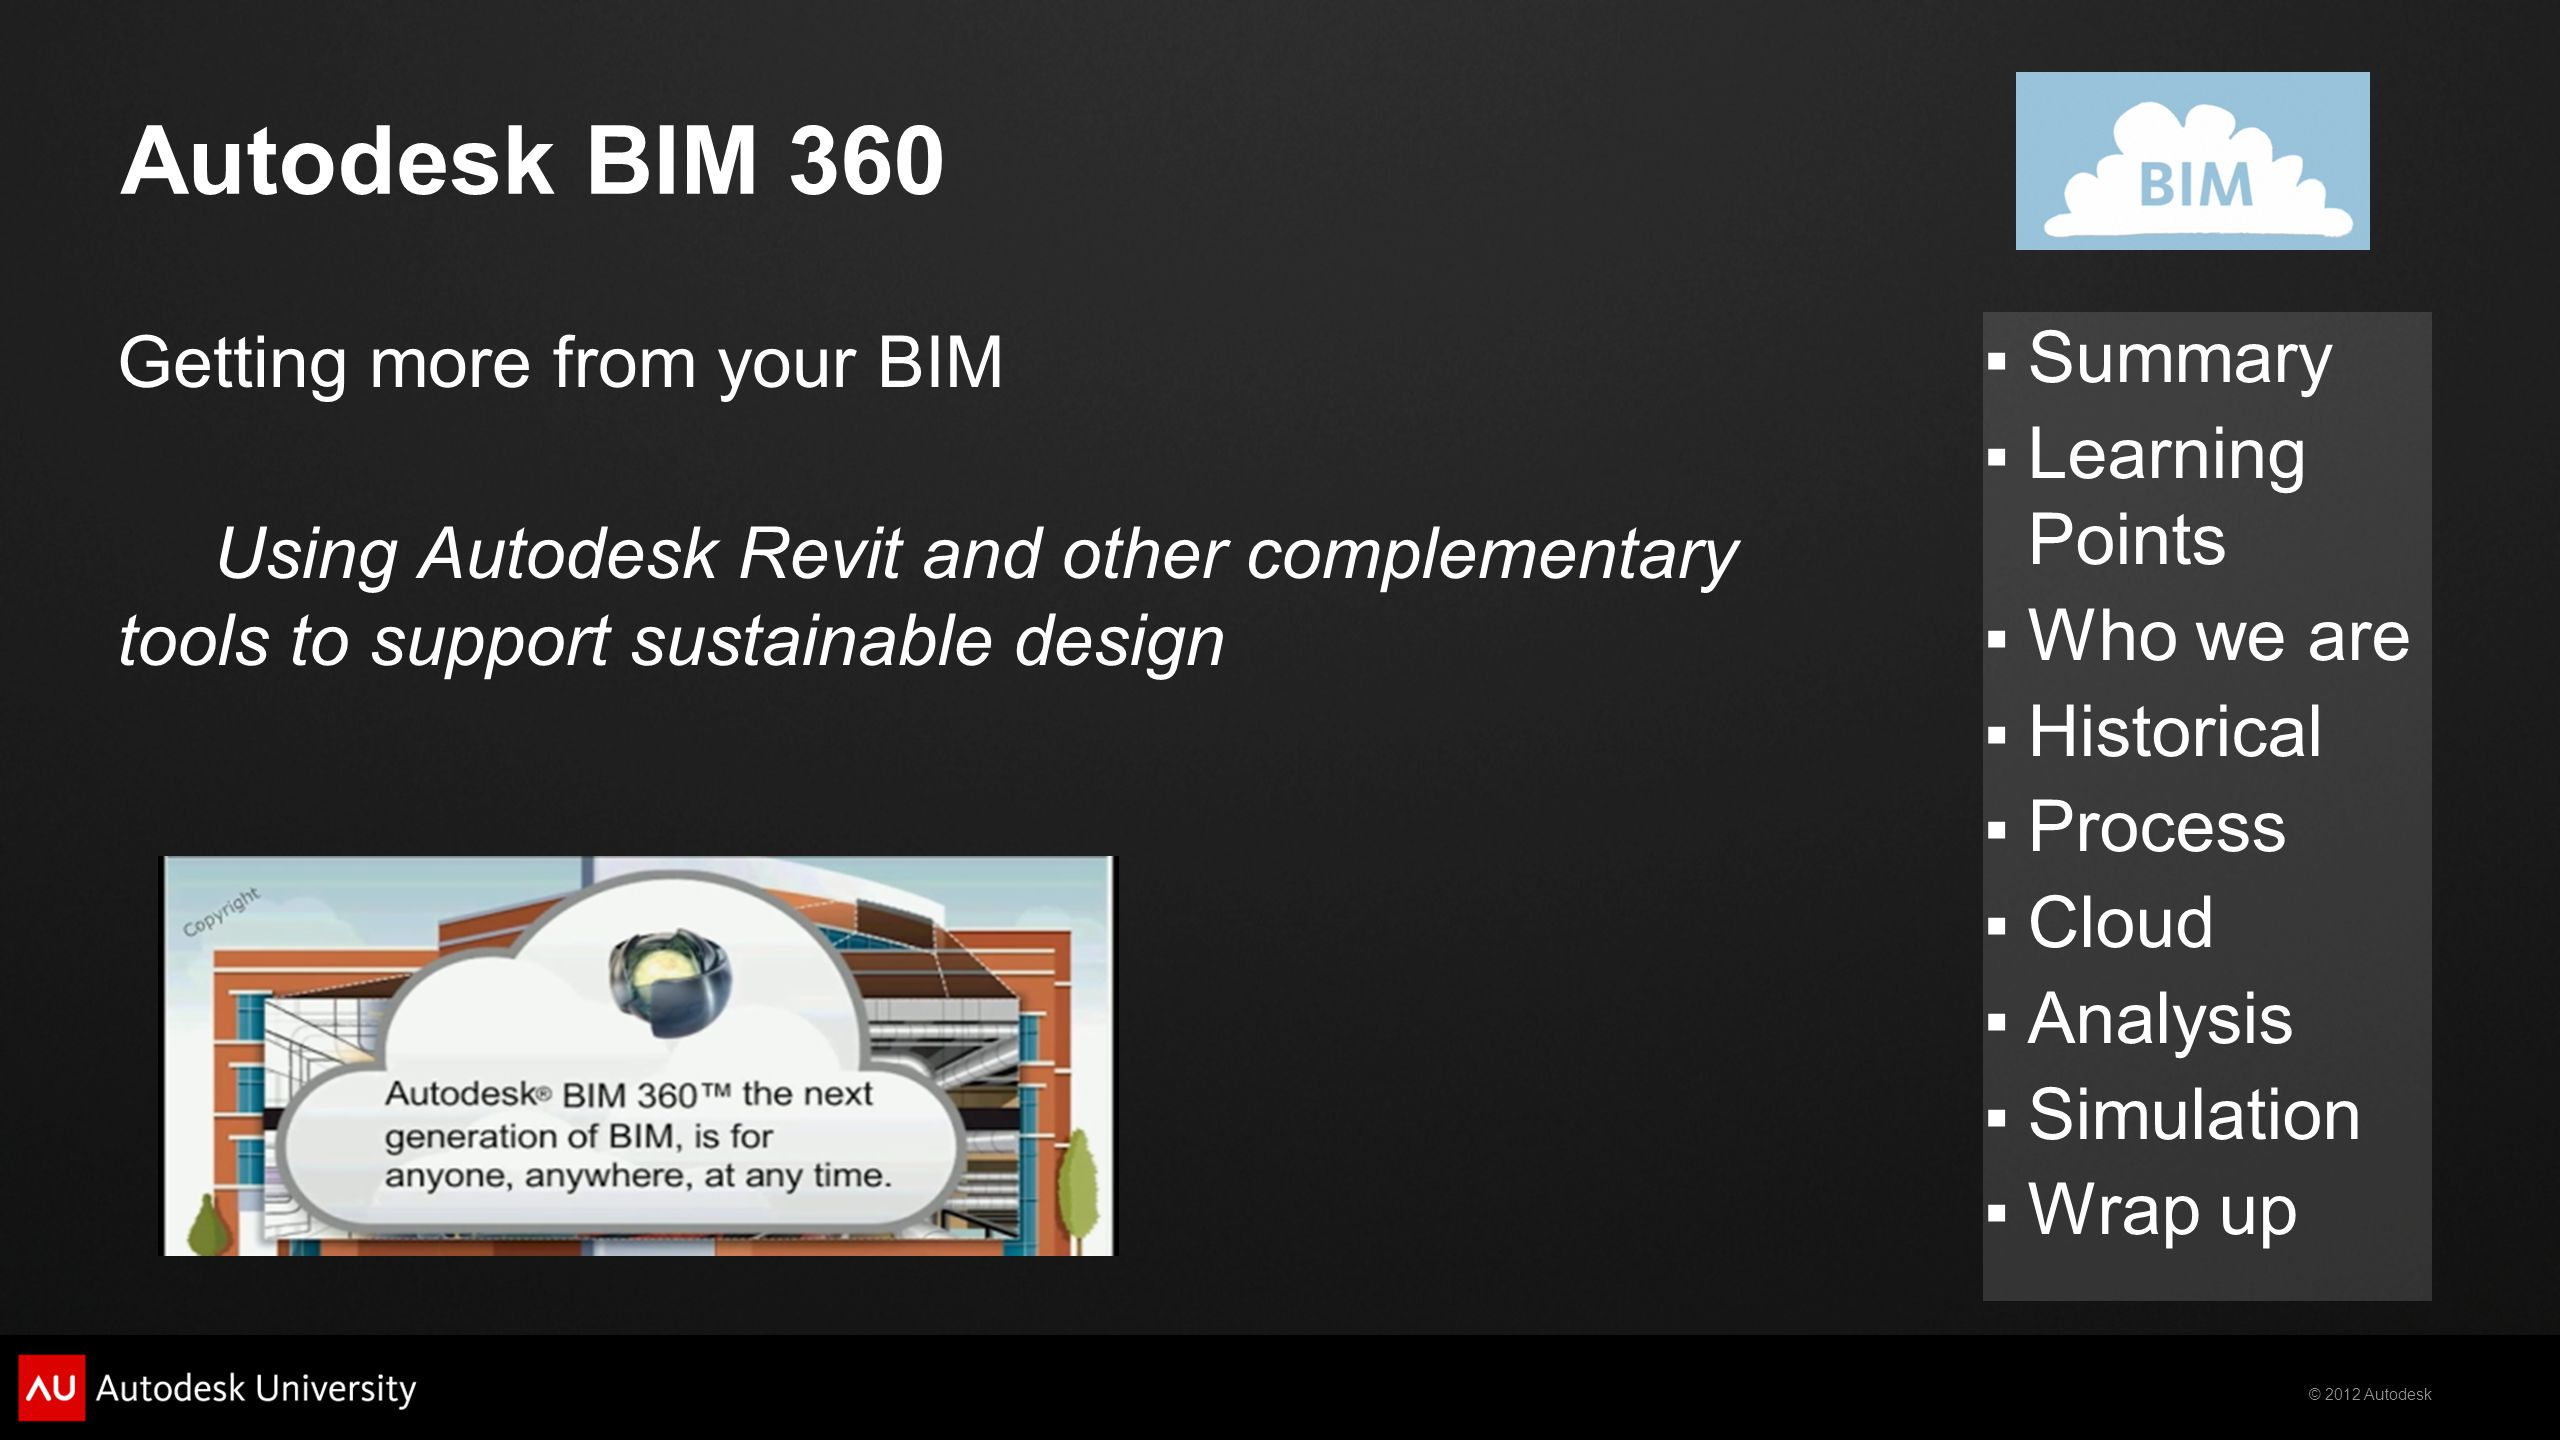 © 2012 Autodesk  Summary  Learning Points  Who we are  Historical  Process  Cloud  Analysis  Simulation  Wrap up Autodesk BIM 360 Getting mor